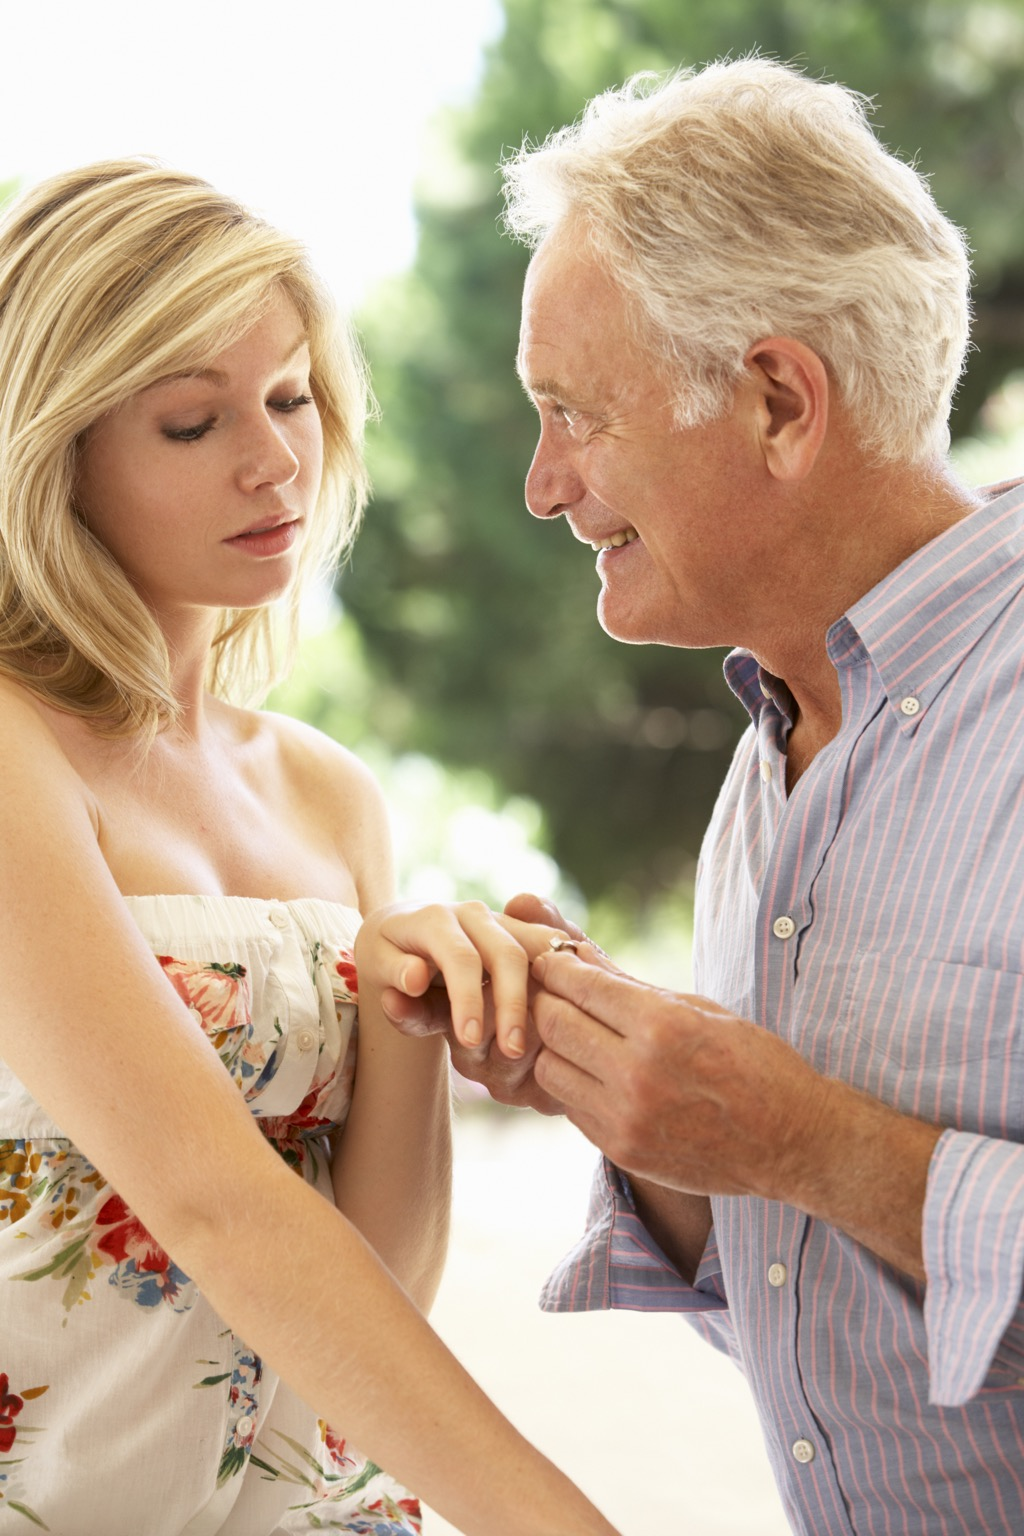 Older man younger woman, what to give up in your 40s